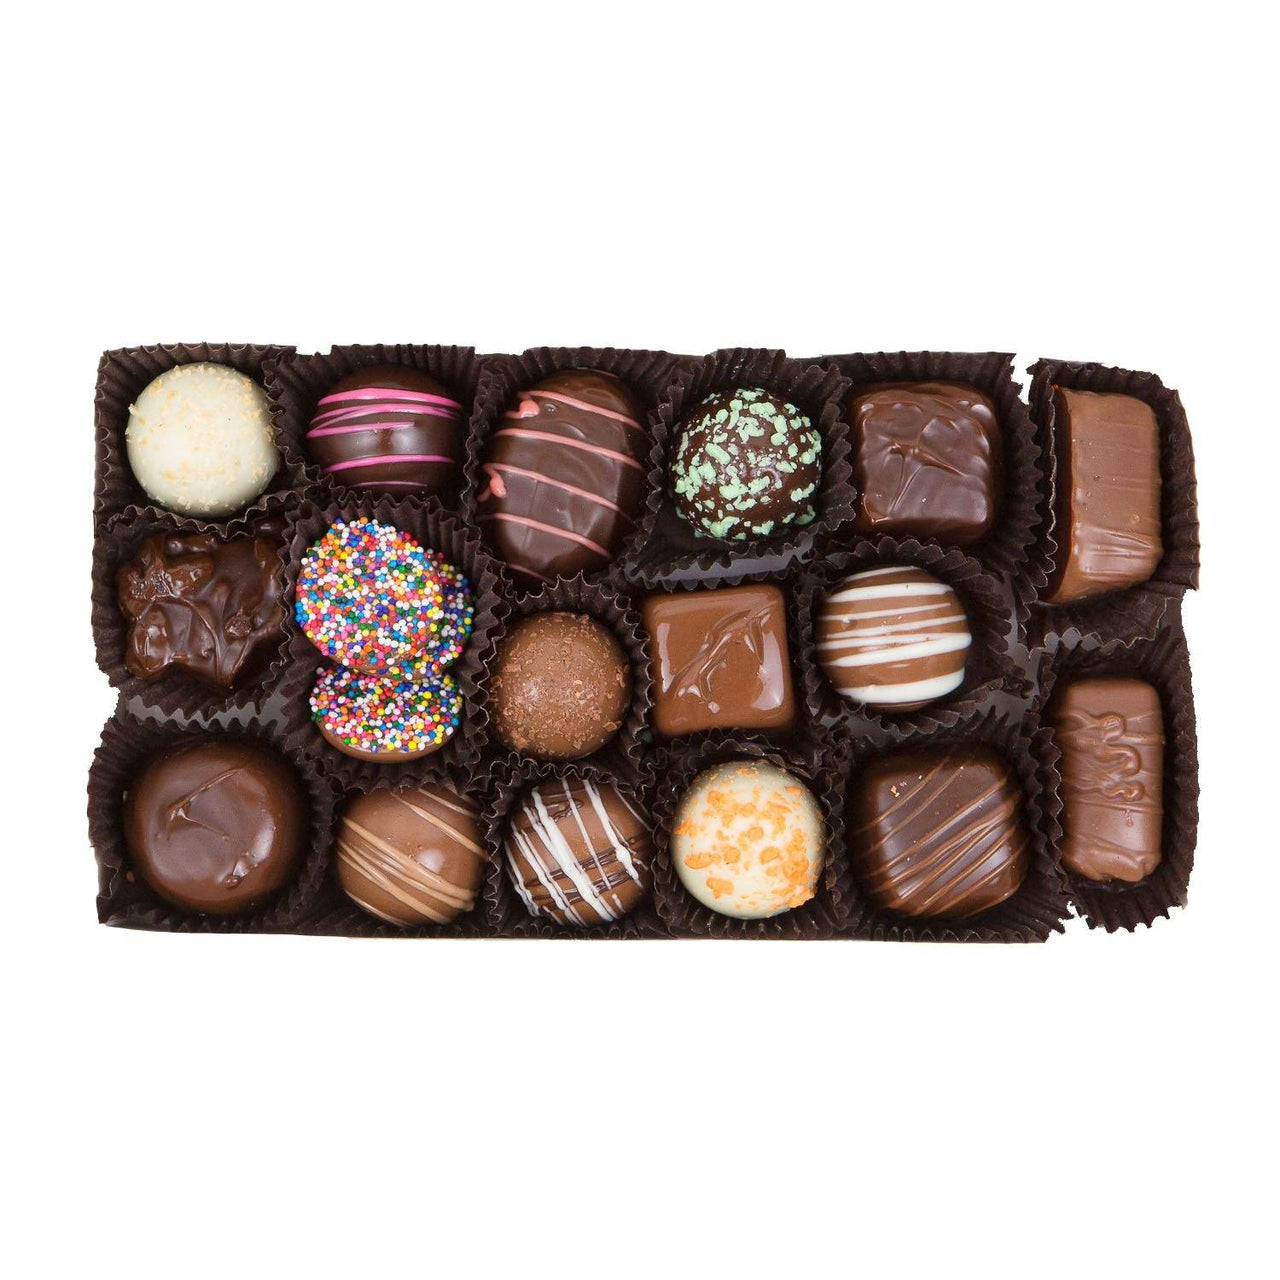 Retirement Gifts - Assorted Chocolate Gift Box - Jackie's Chocolate